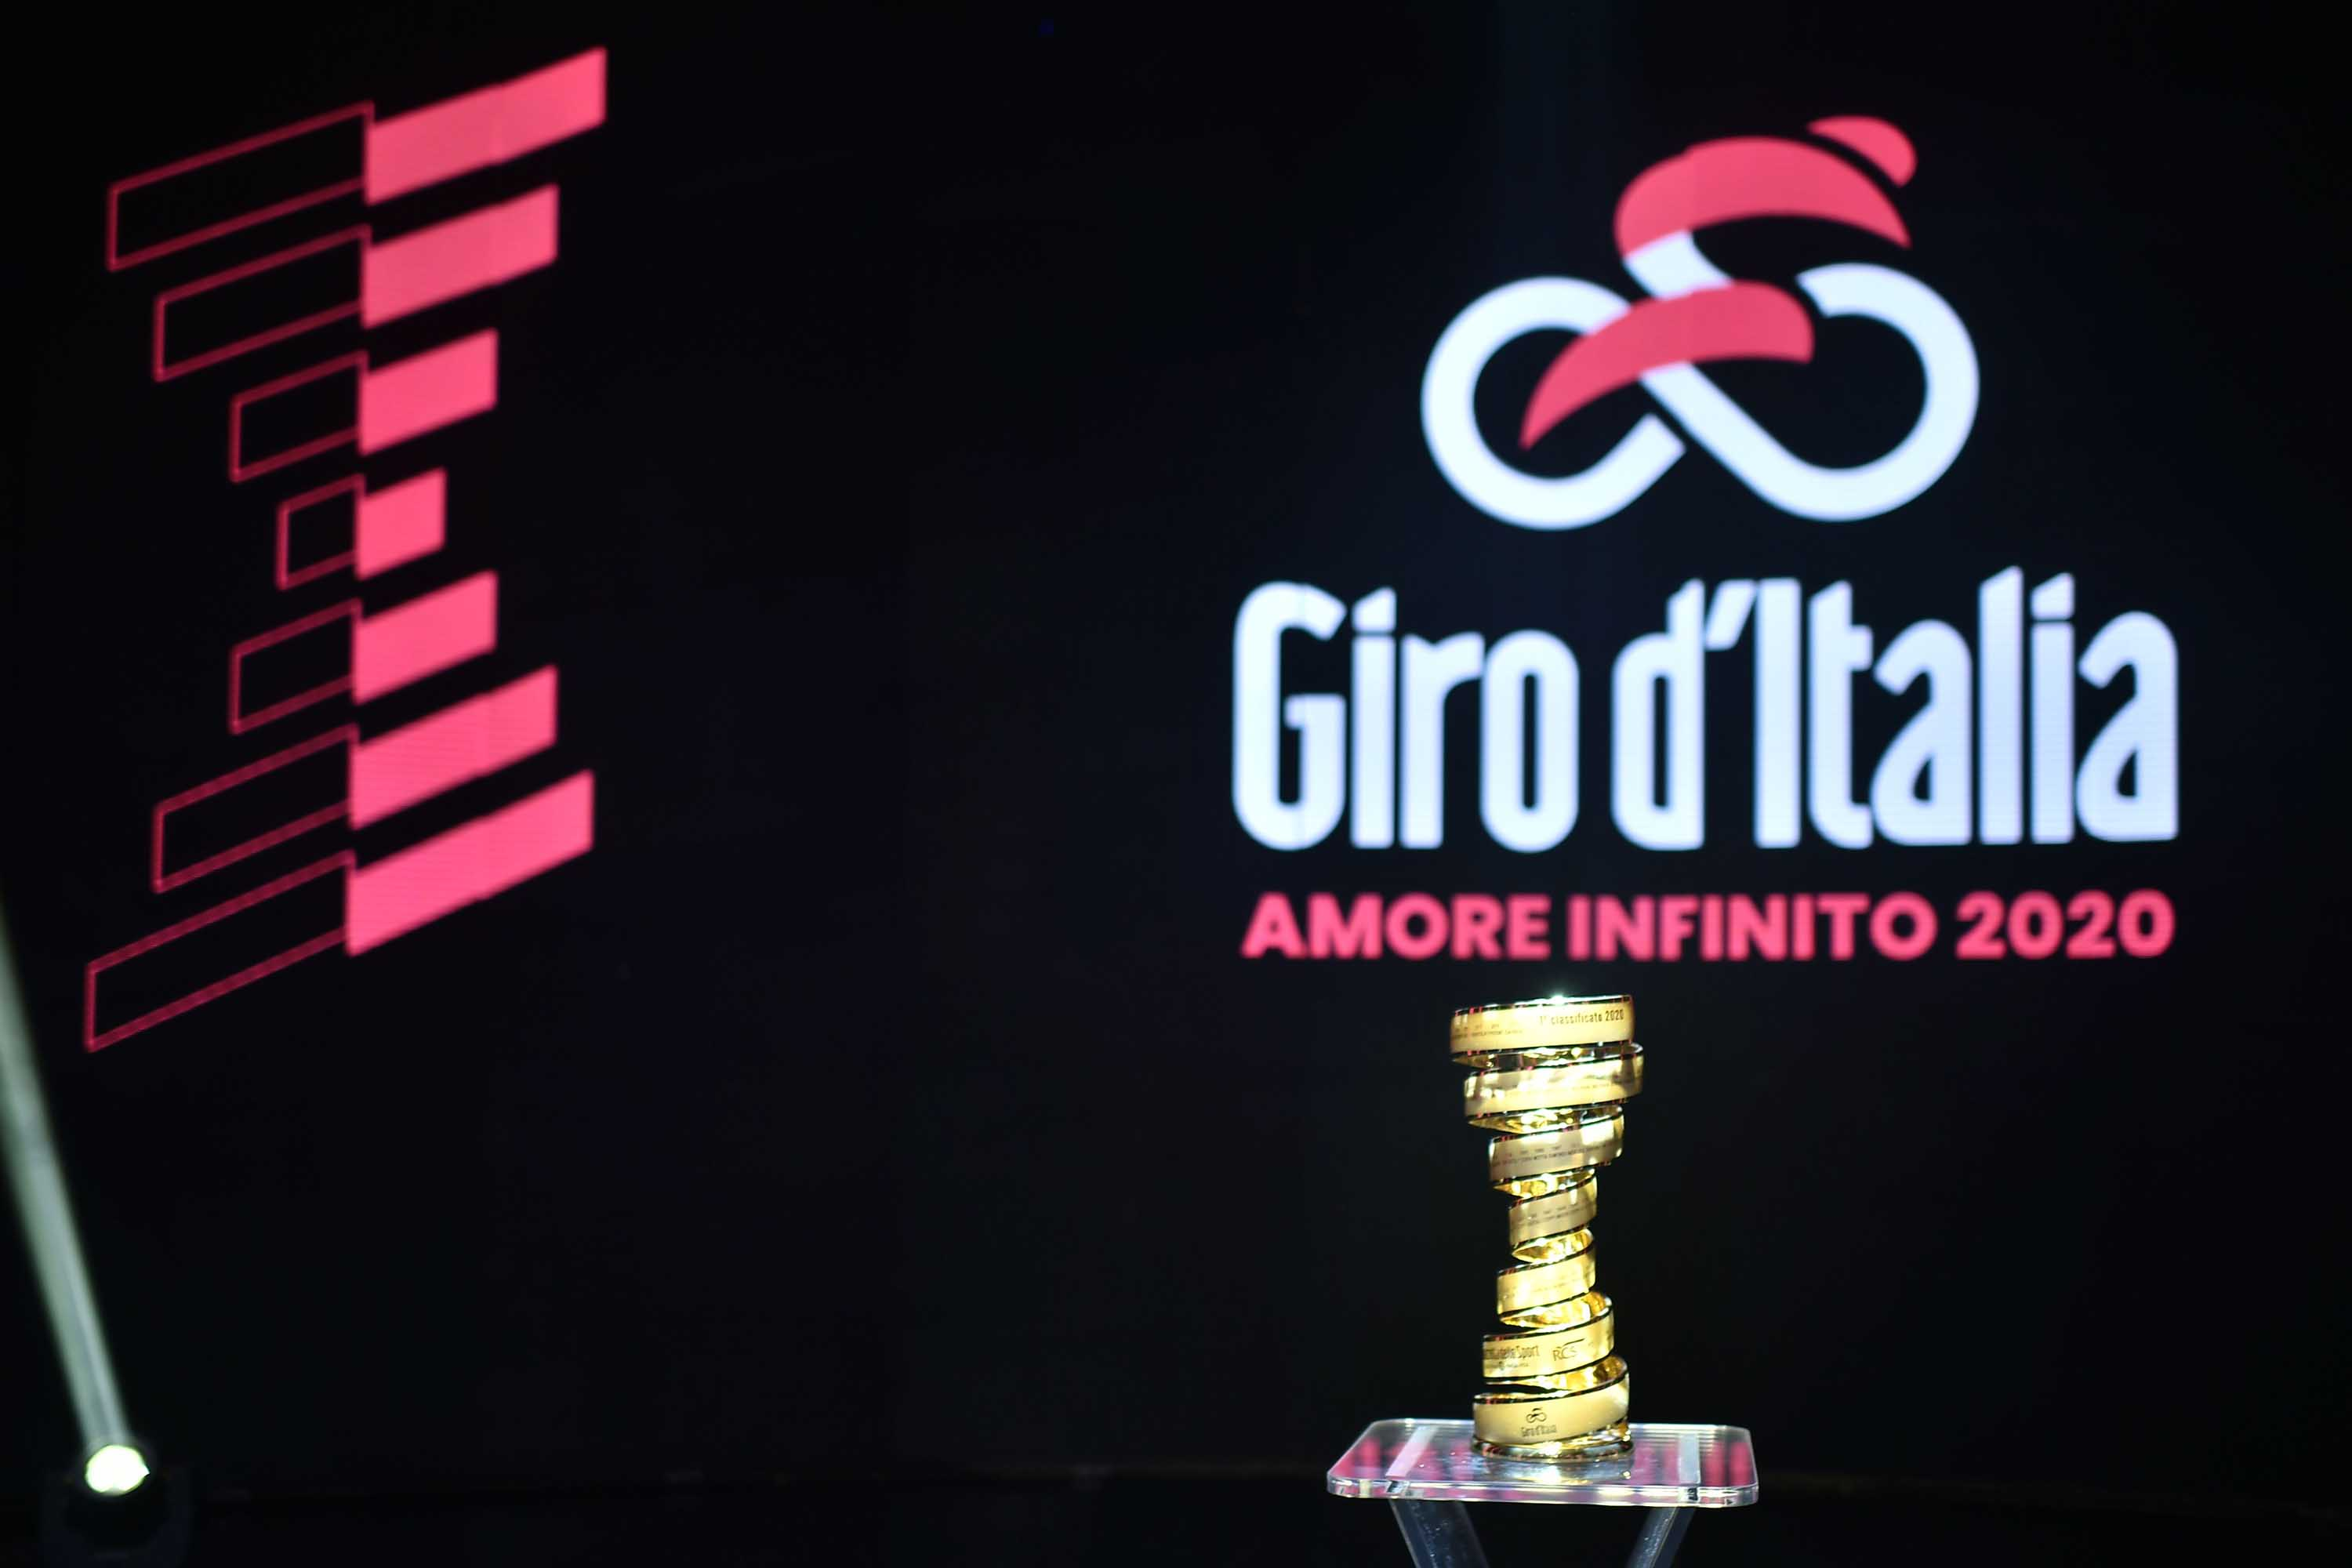 The Giro d'Italia winner's trophy is pictured during an event in Milan, Italy, in October 2019.